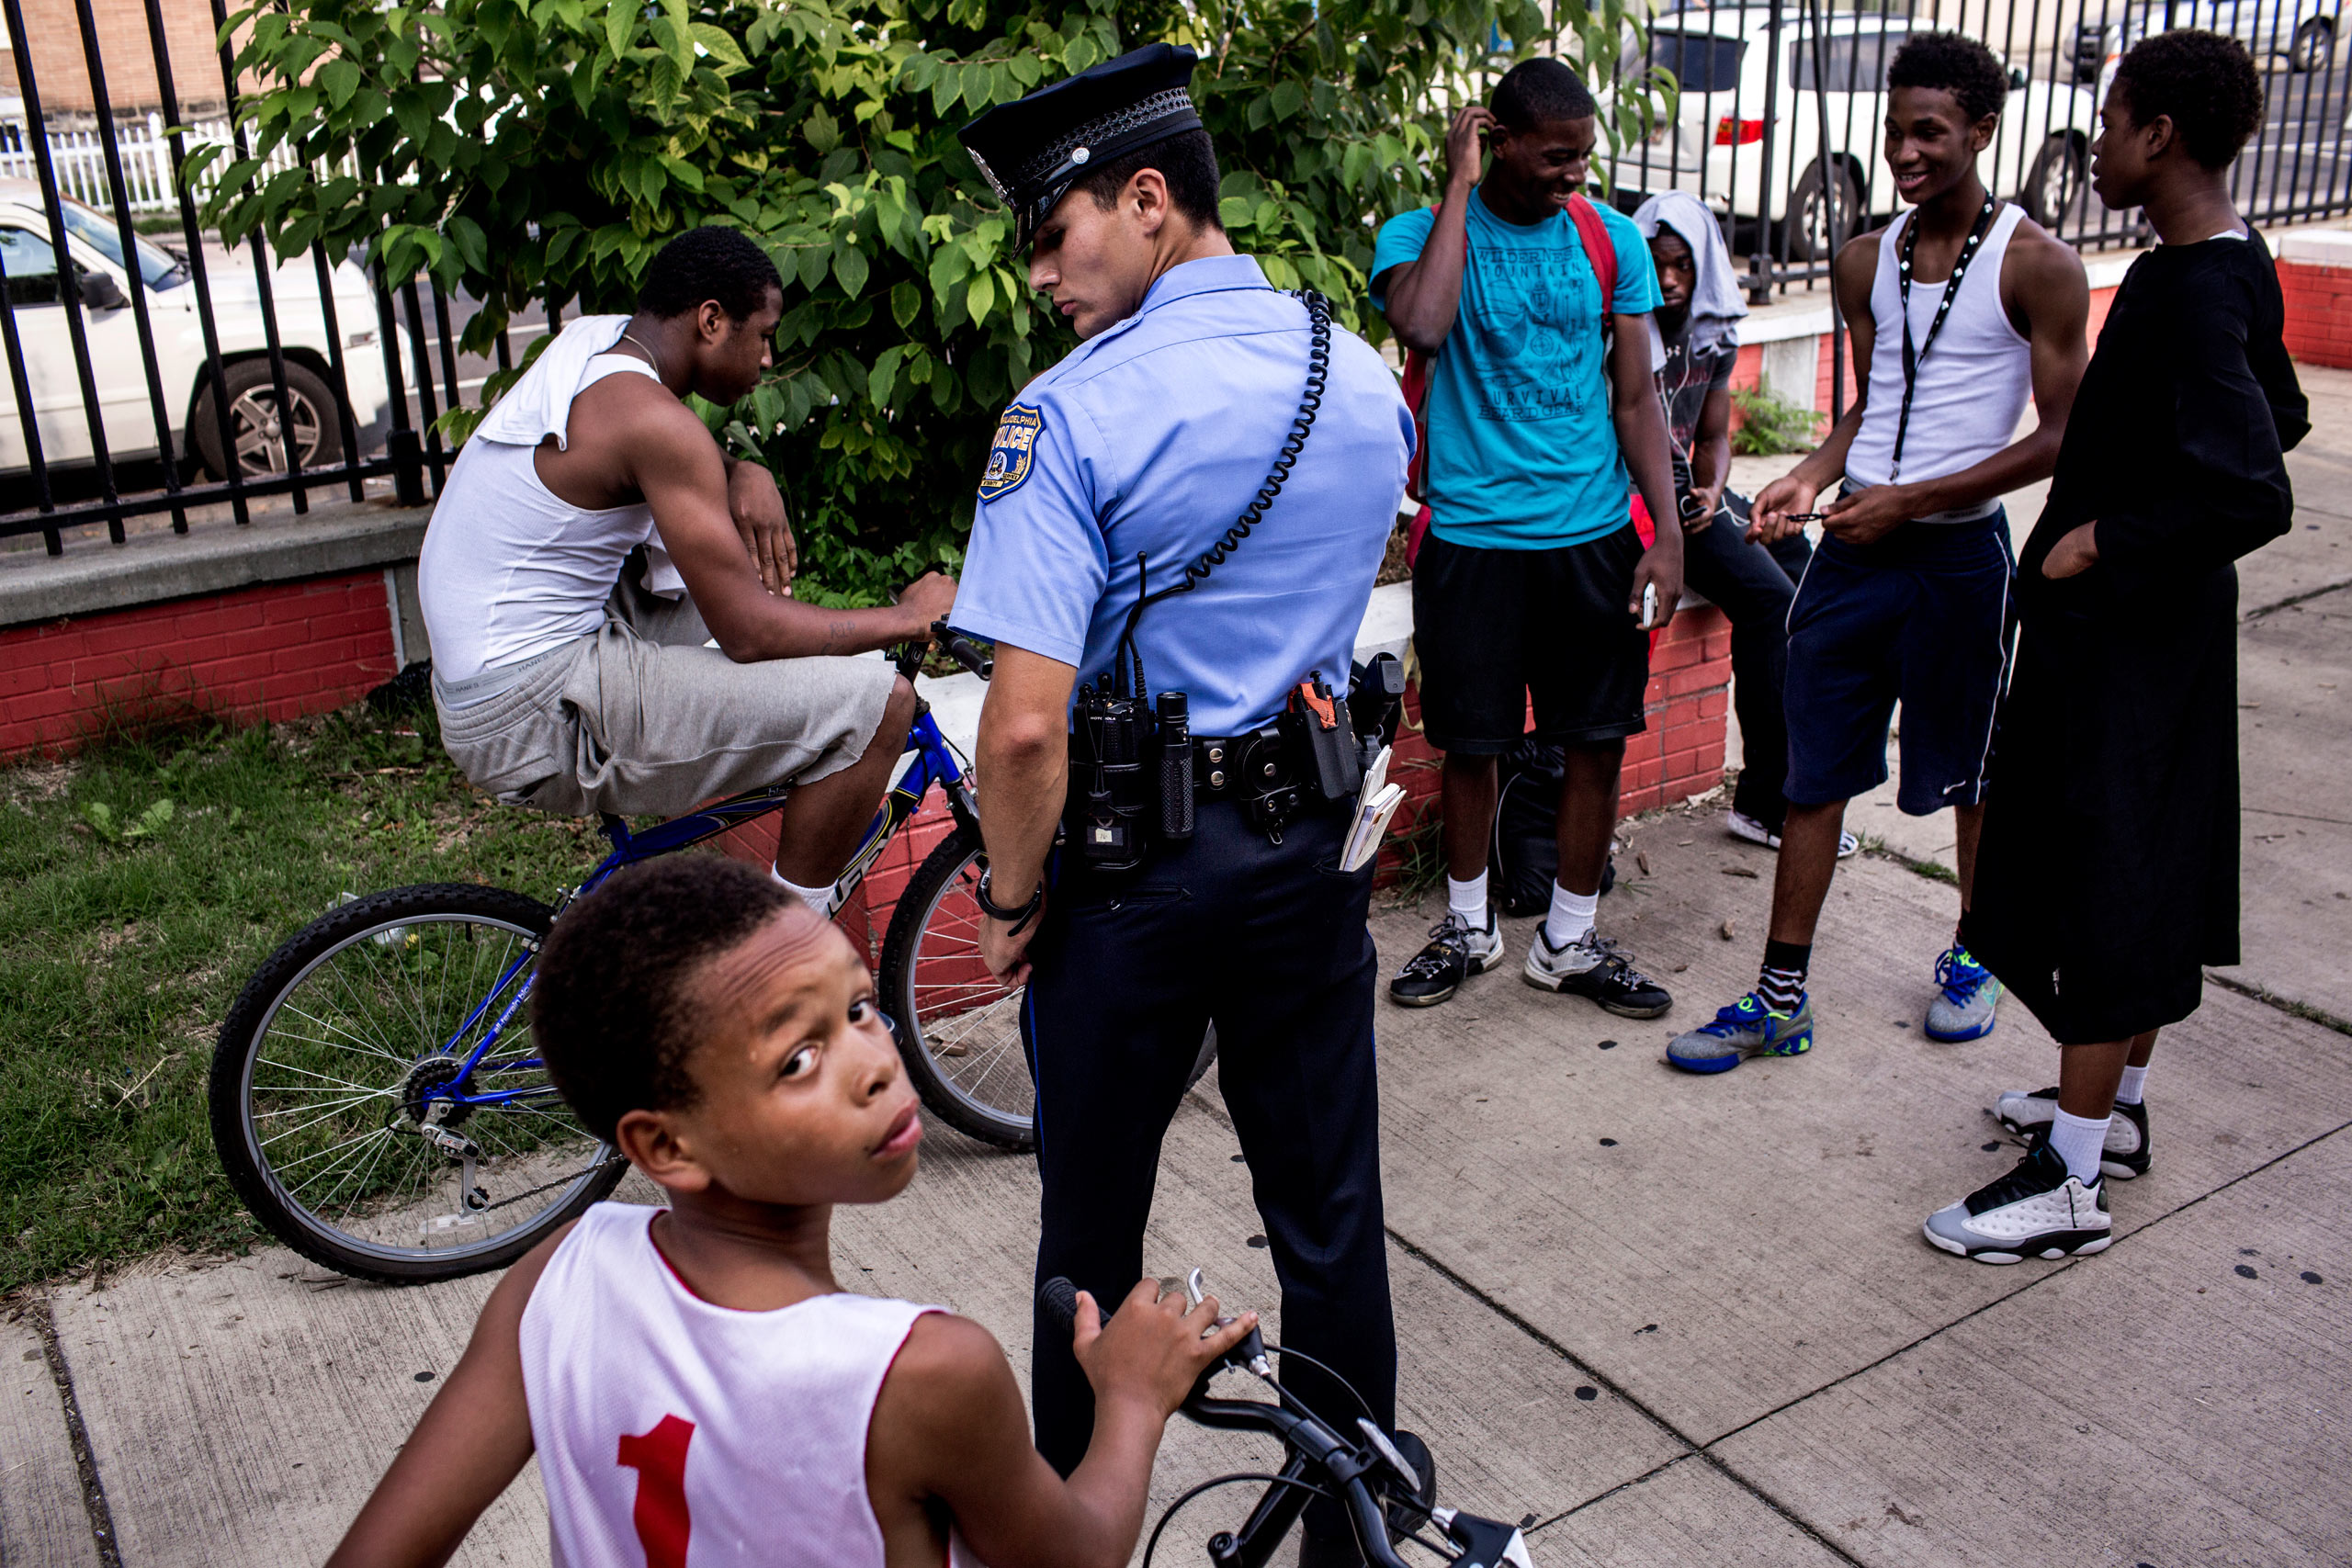 First year officer Jonathan Dedos (a  foot beat ) questions a group of young men, after a shooting suspect was described as an African-American  wearing white and on a bike, a description which could apply to many young men in the neighborhood. This group, at a local park, was vouched for by a man who works with local youth, and the police moved on. July 28, 2015. Philadelphia, Pa.